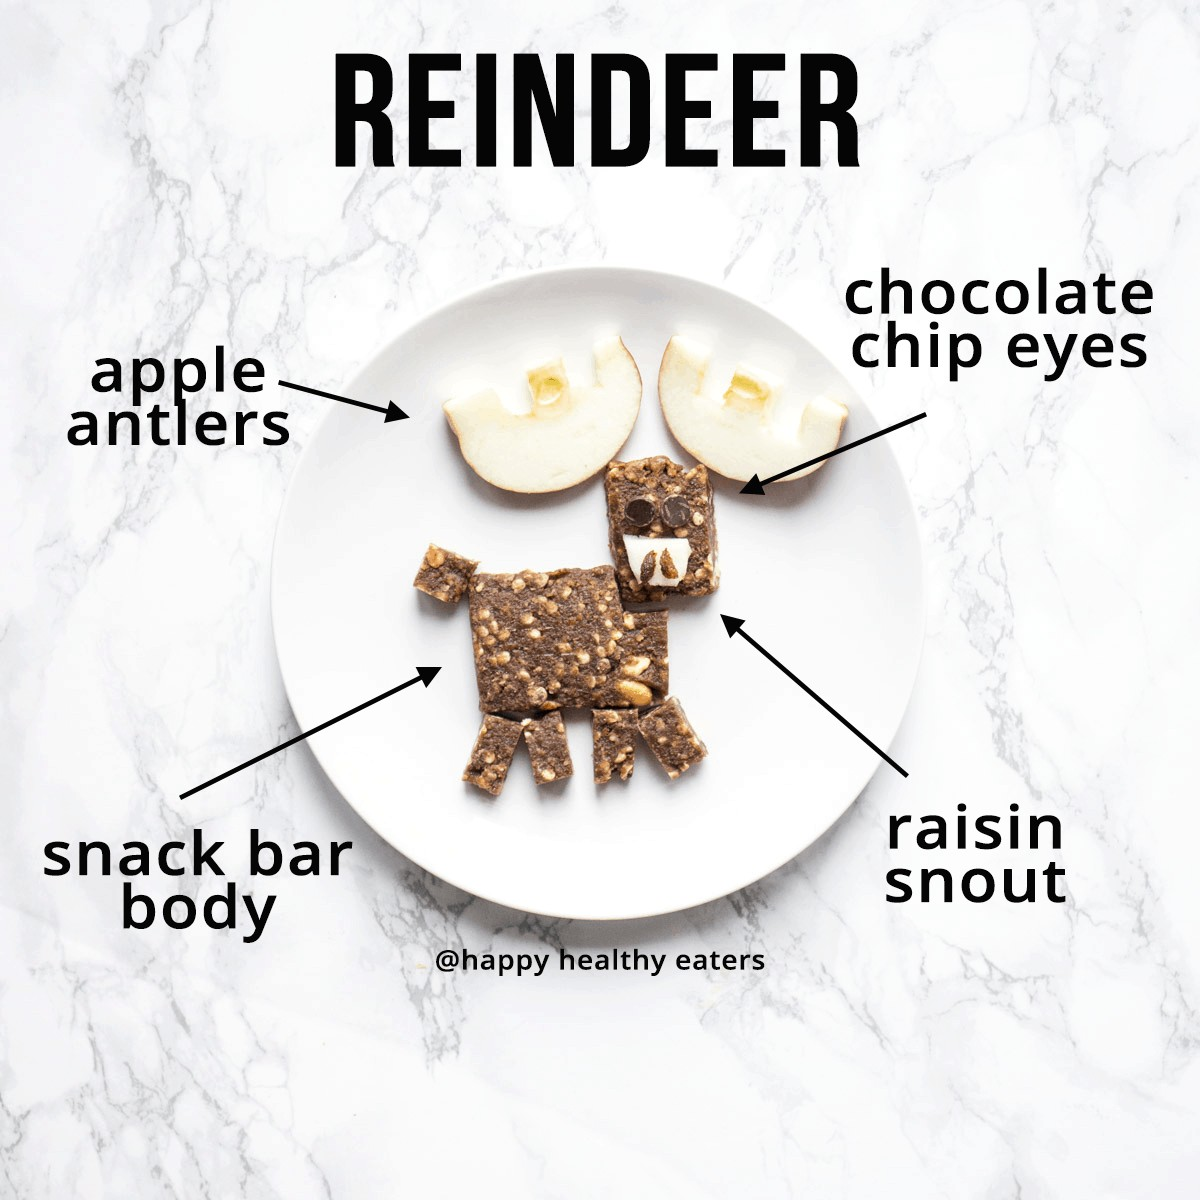 Christmas Snacks: easy and healthy (reindeer)